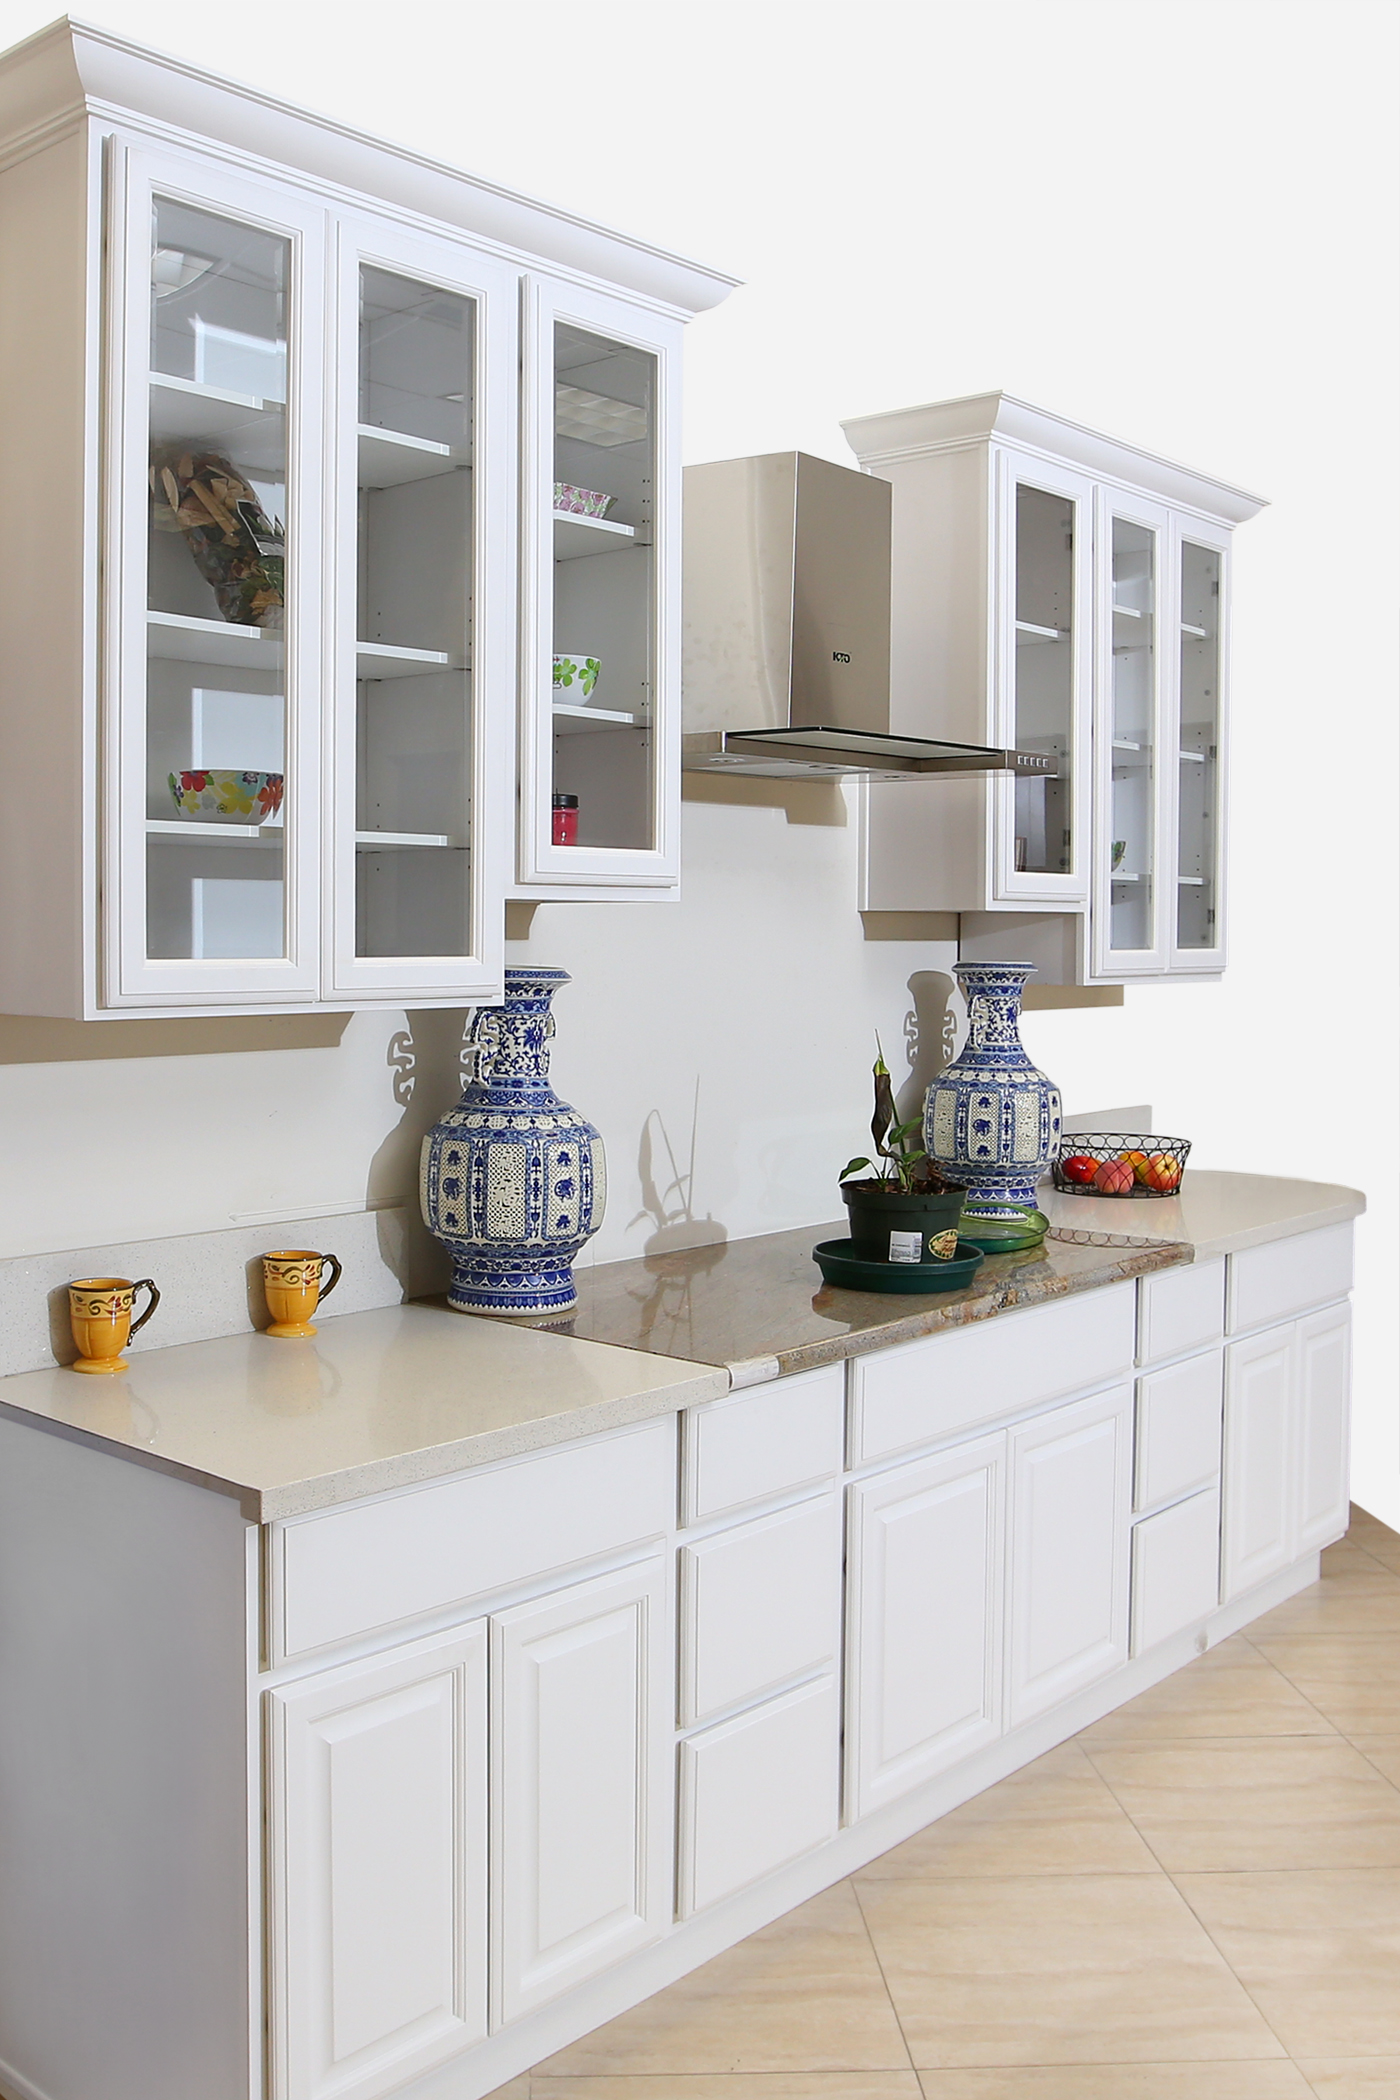 Affordable Cabinets And Countertops Utah